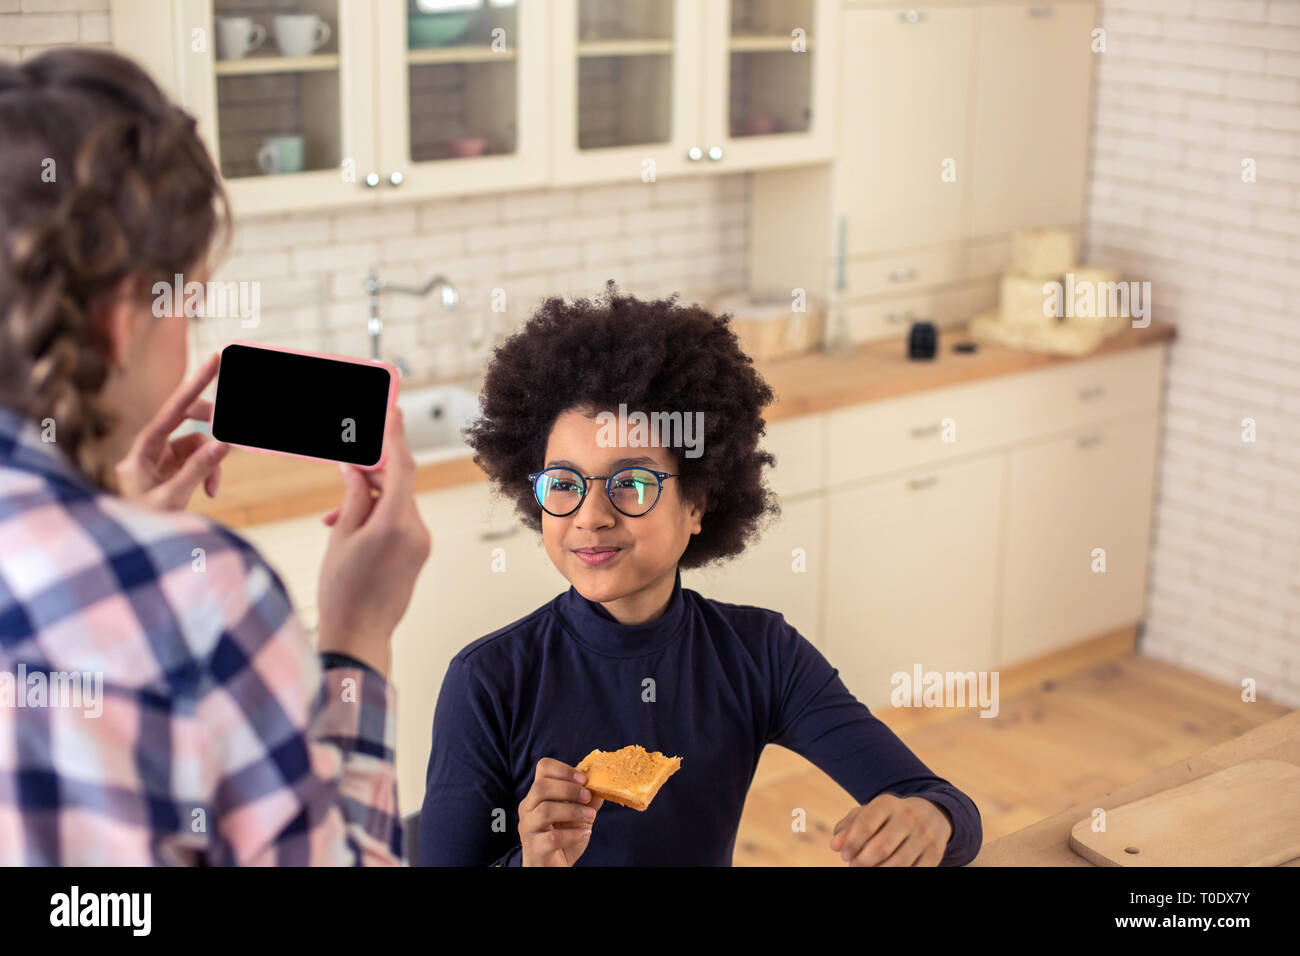 Pleased curly-haired kid keeping smile on his face - Stock Image